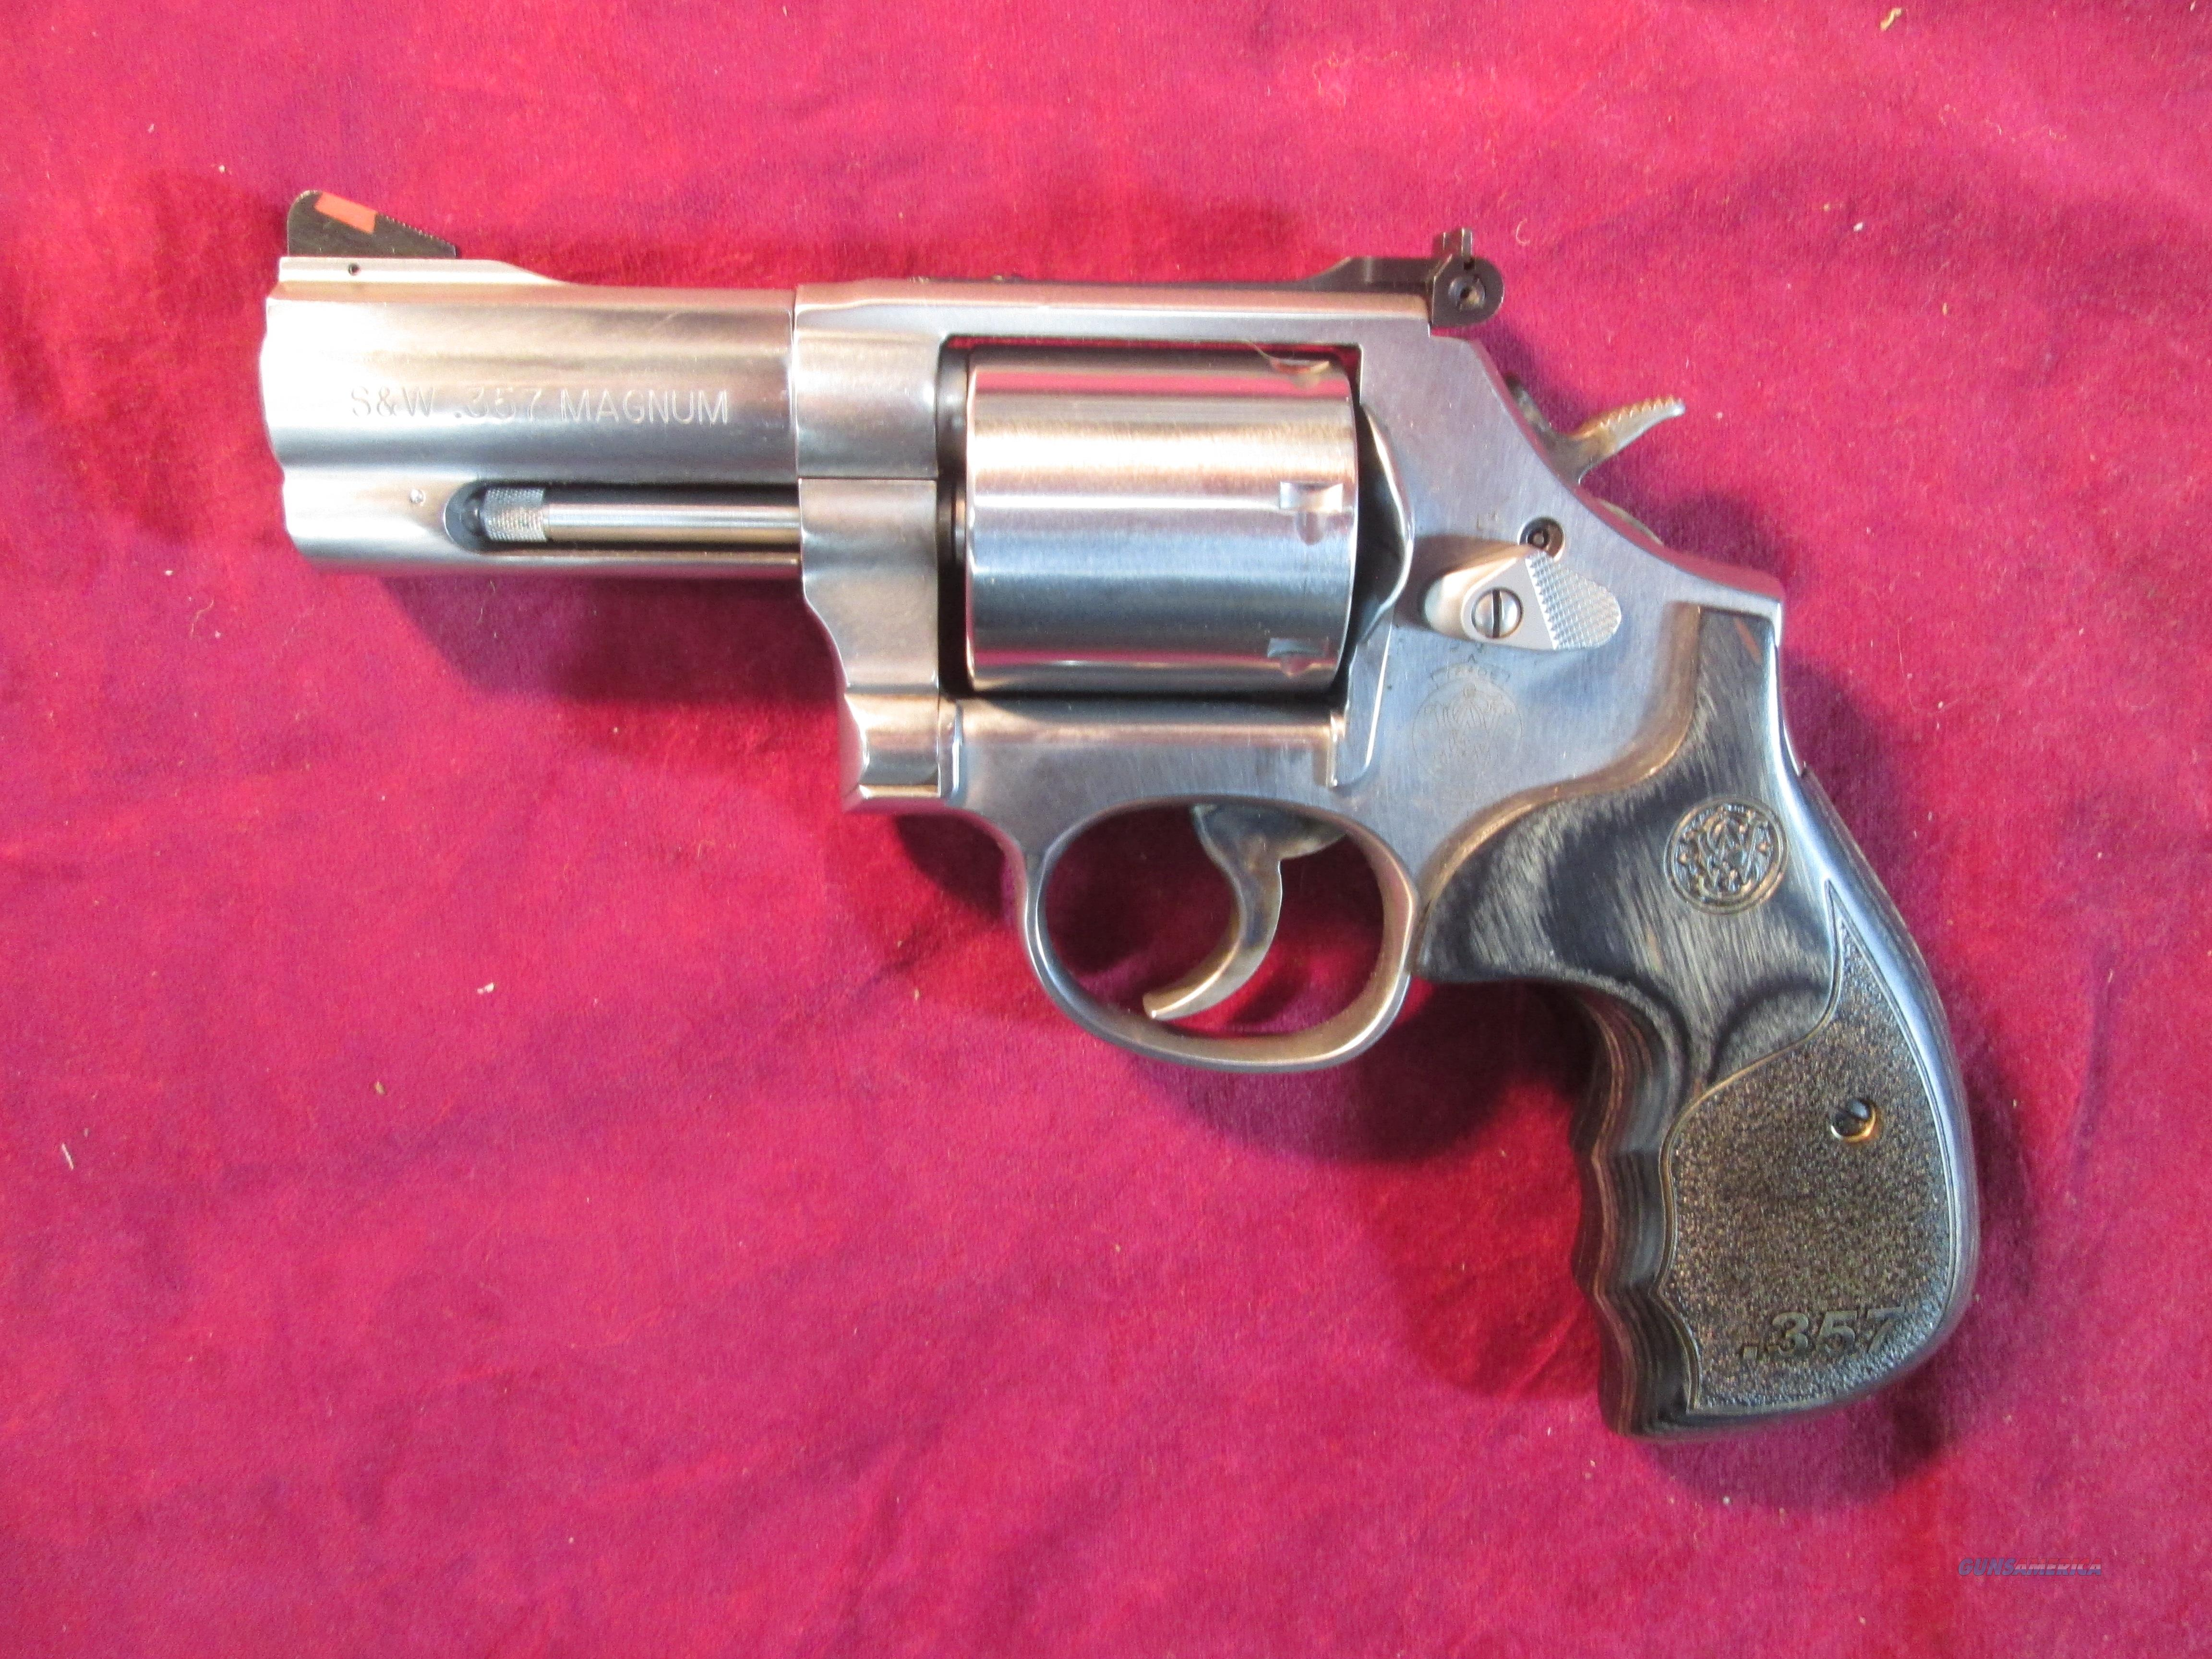 "SMITH AND WESSON MODEL 686 DELUXE 3"" 357MAG STAINLESS LNIB USED  Guns > Pistols > Smith & Wesson Revolvers > Full Frame Revolver"